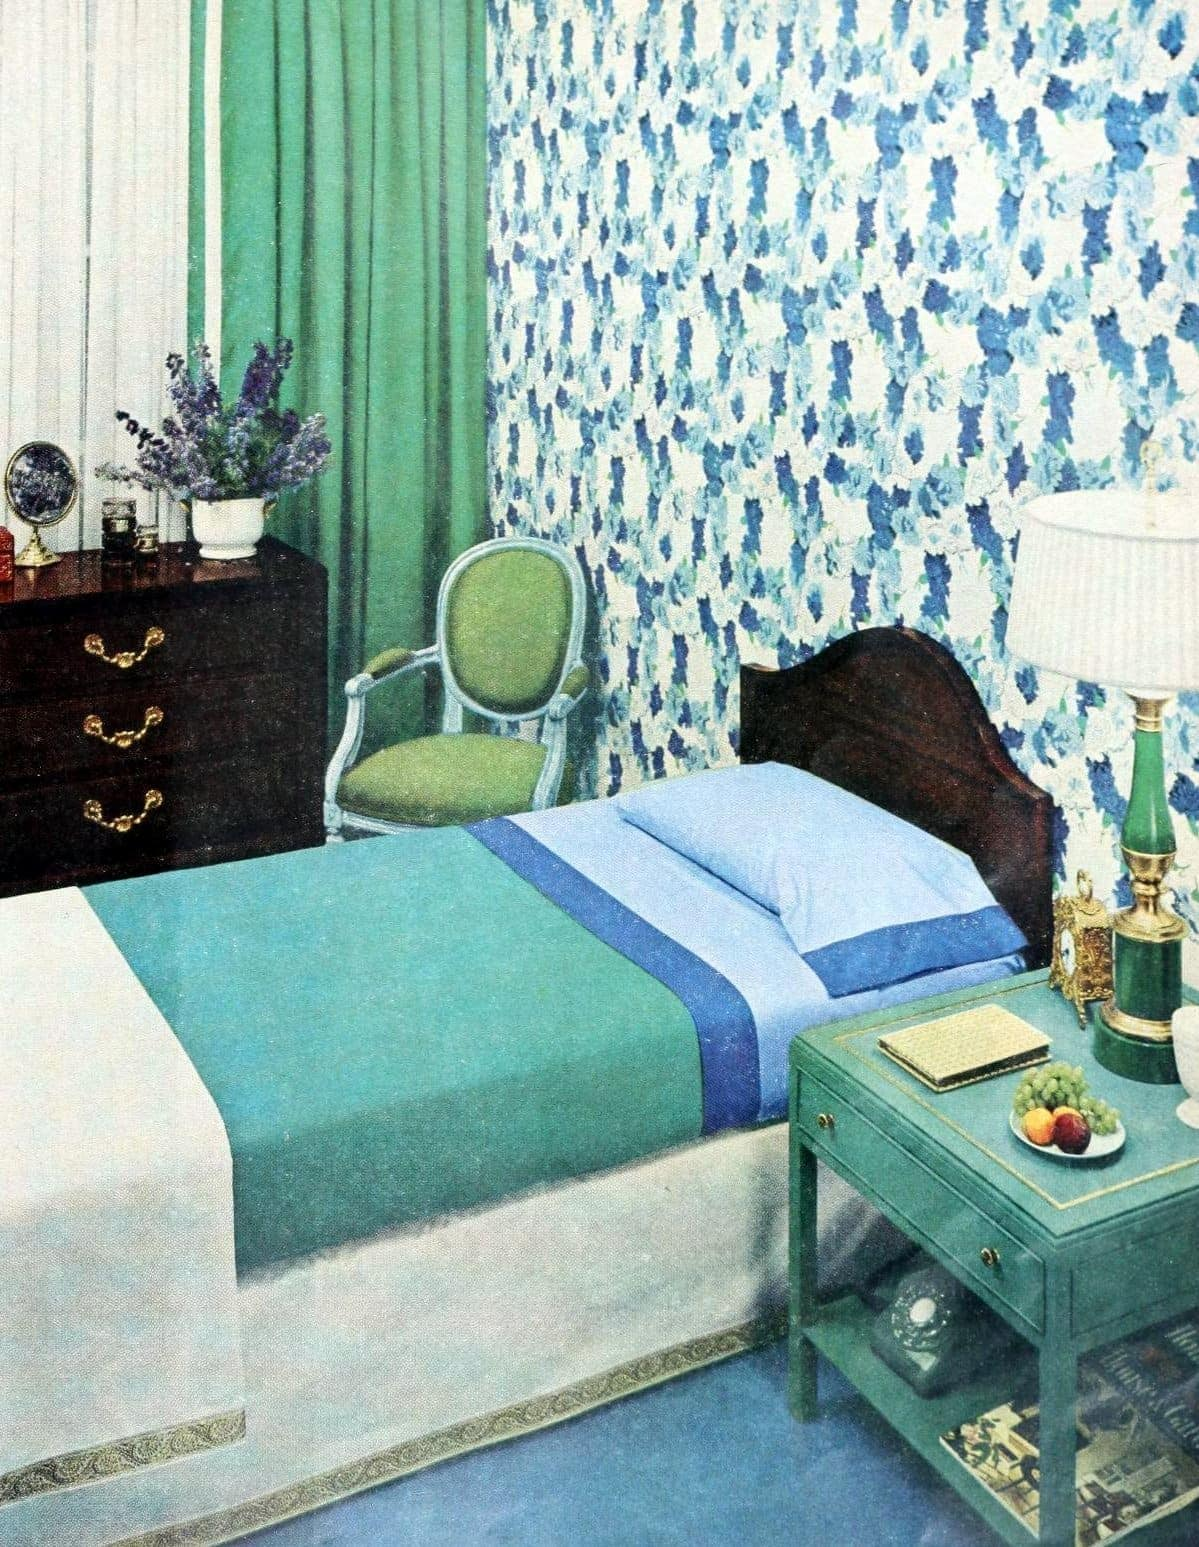 Bed in blue and green vintage bedroom from the 1950s